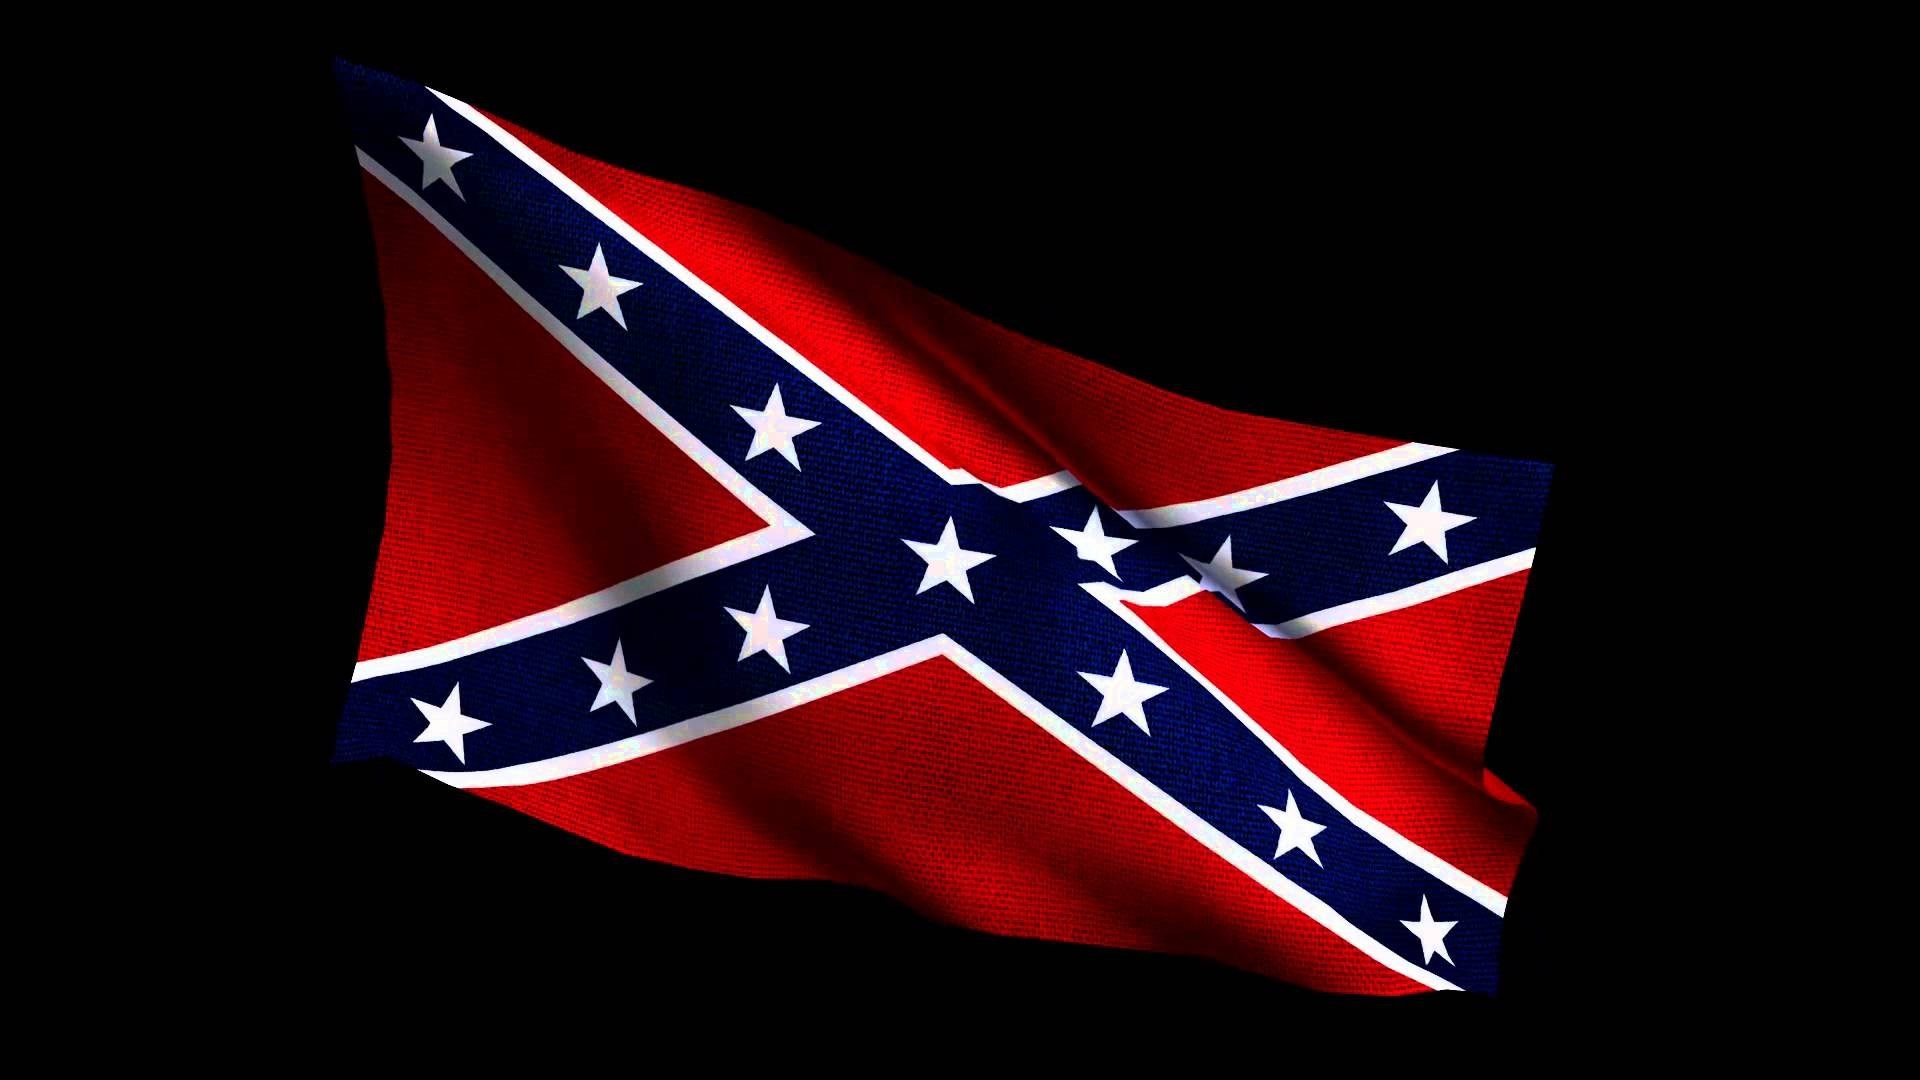 1920x1080 confederate flag wallpaper desktop backgrounds free